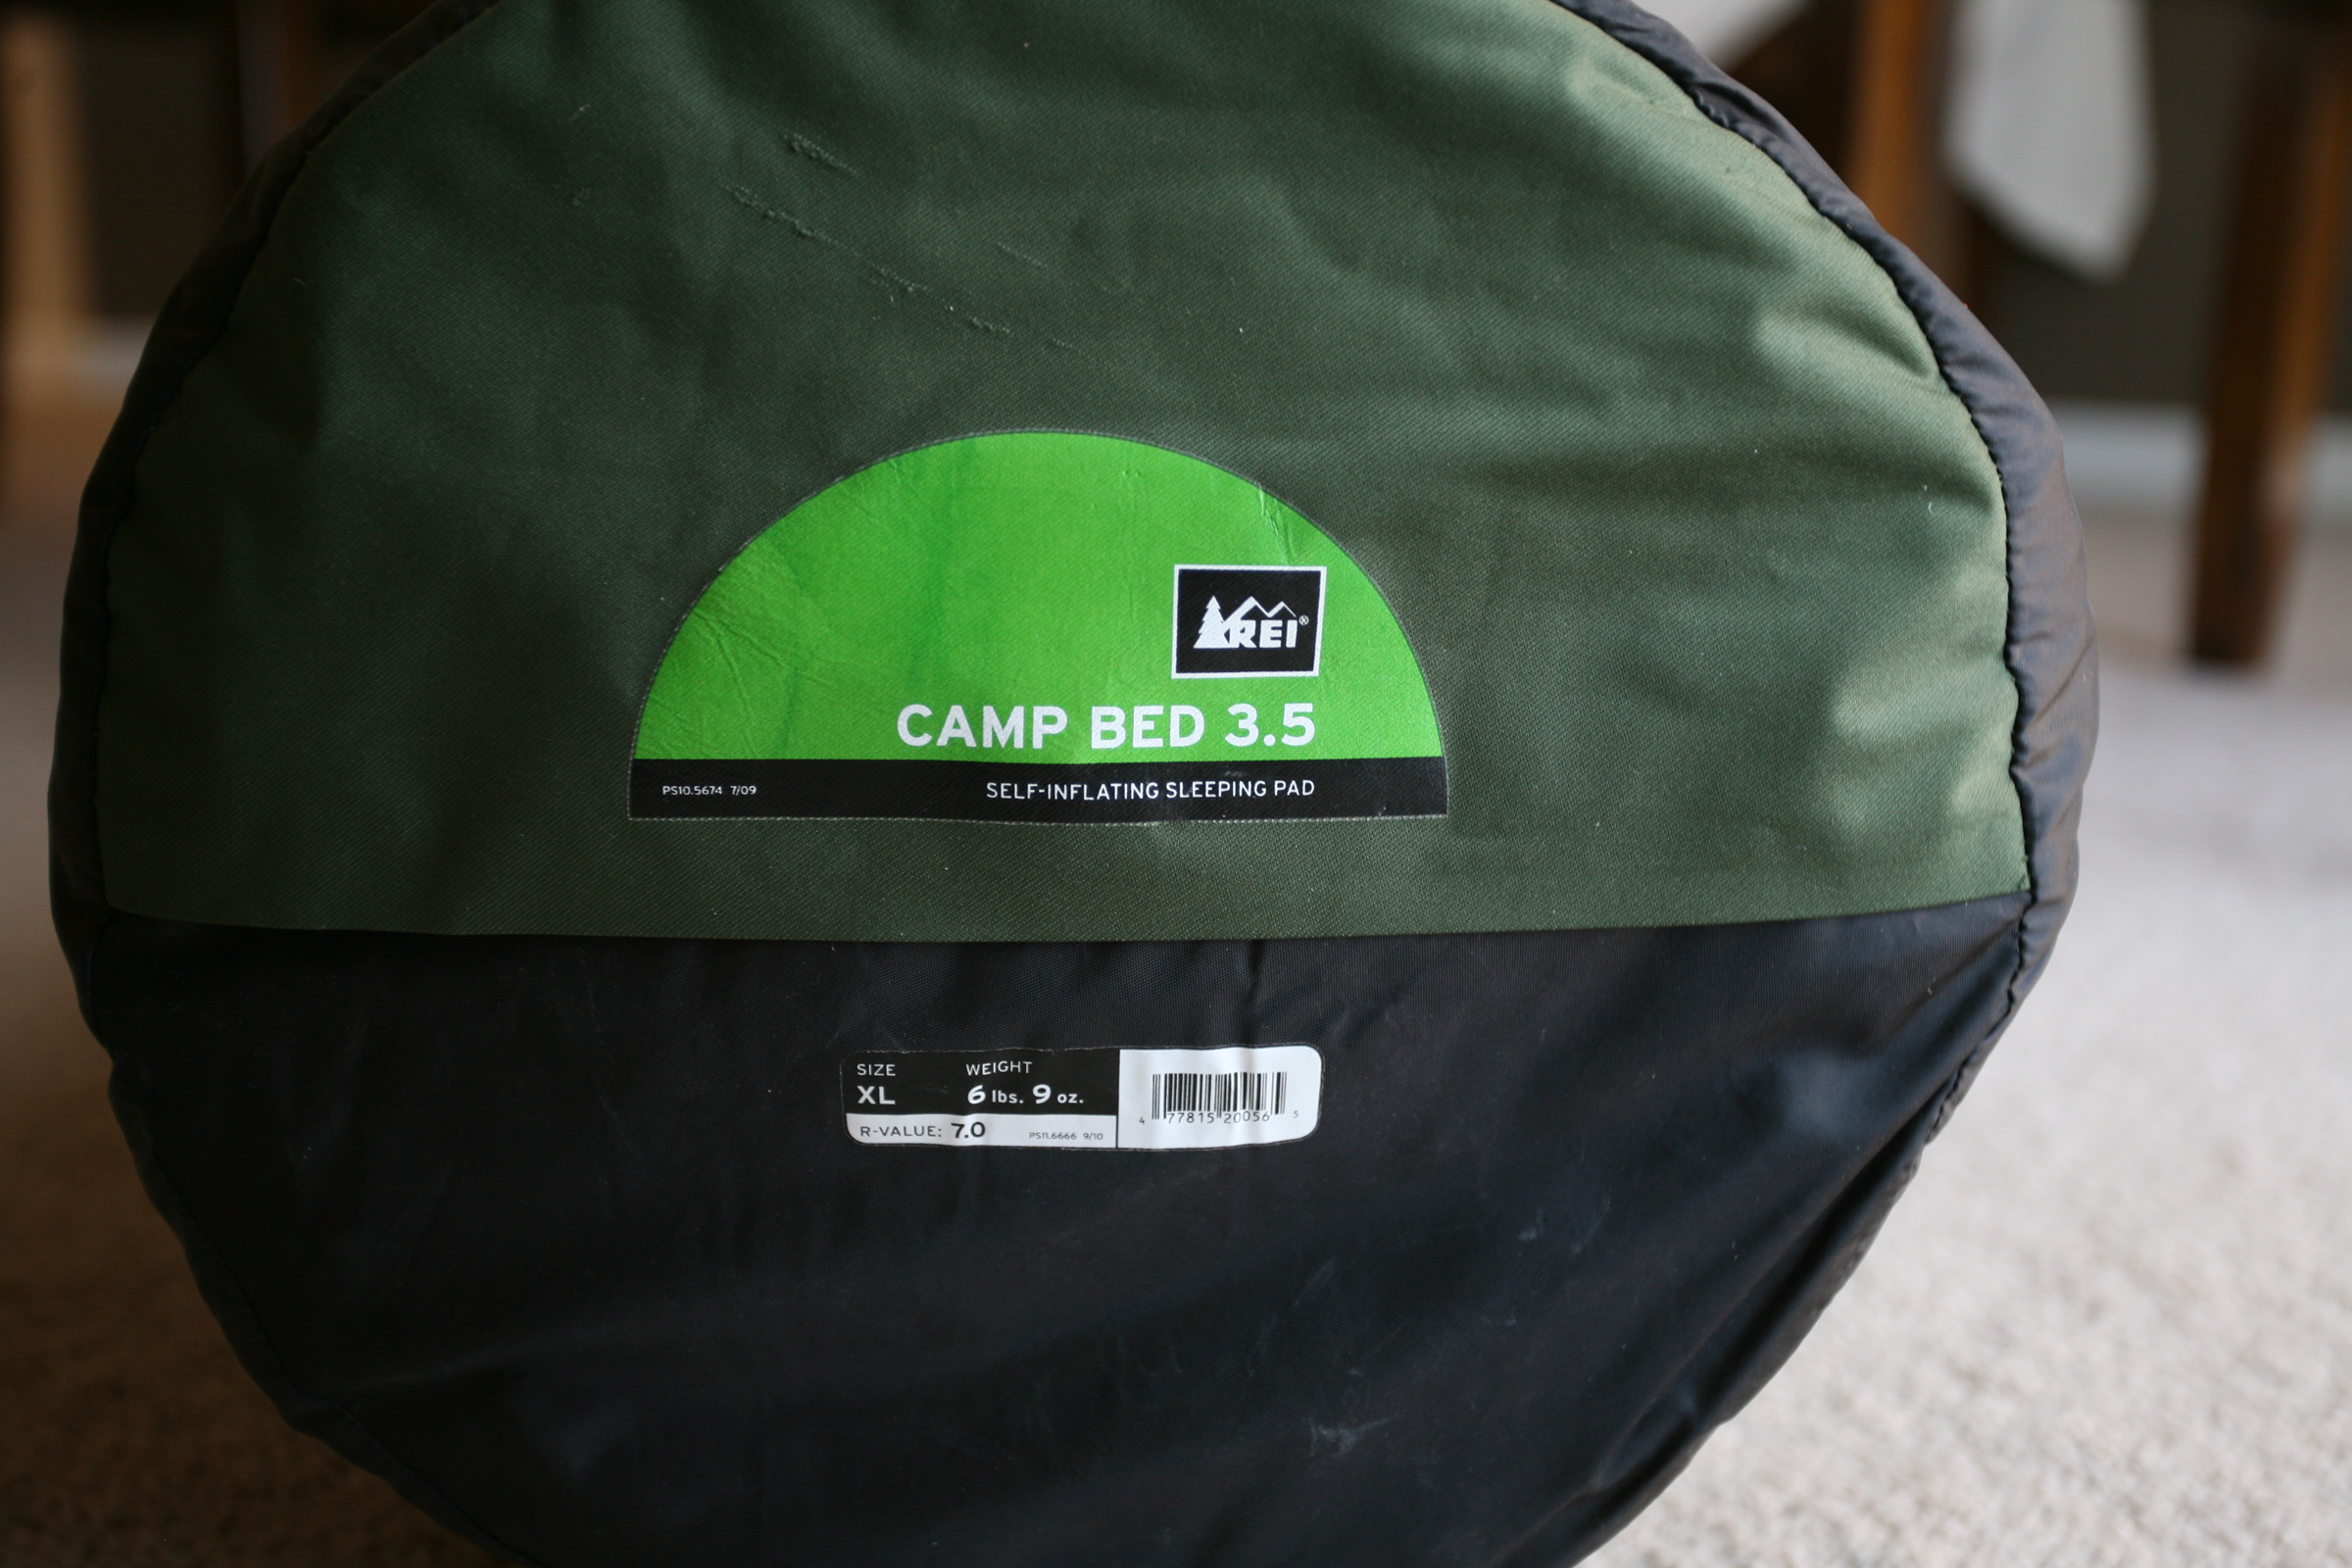 rei camp bed 3.5 - size xl - used only once - great camping pad